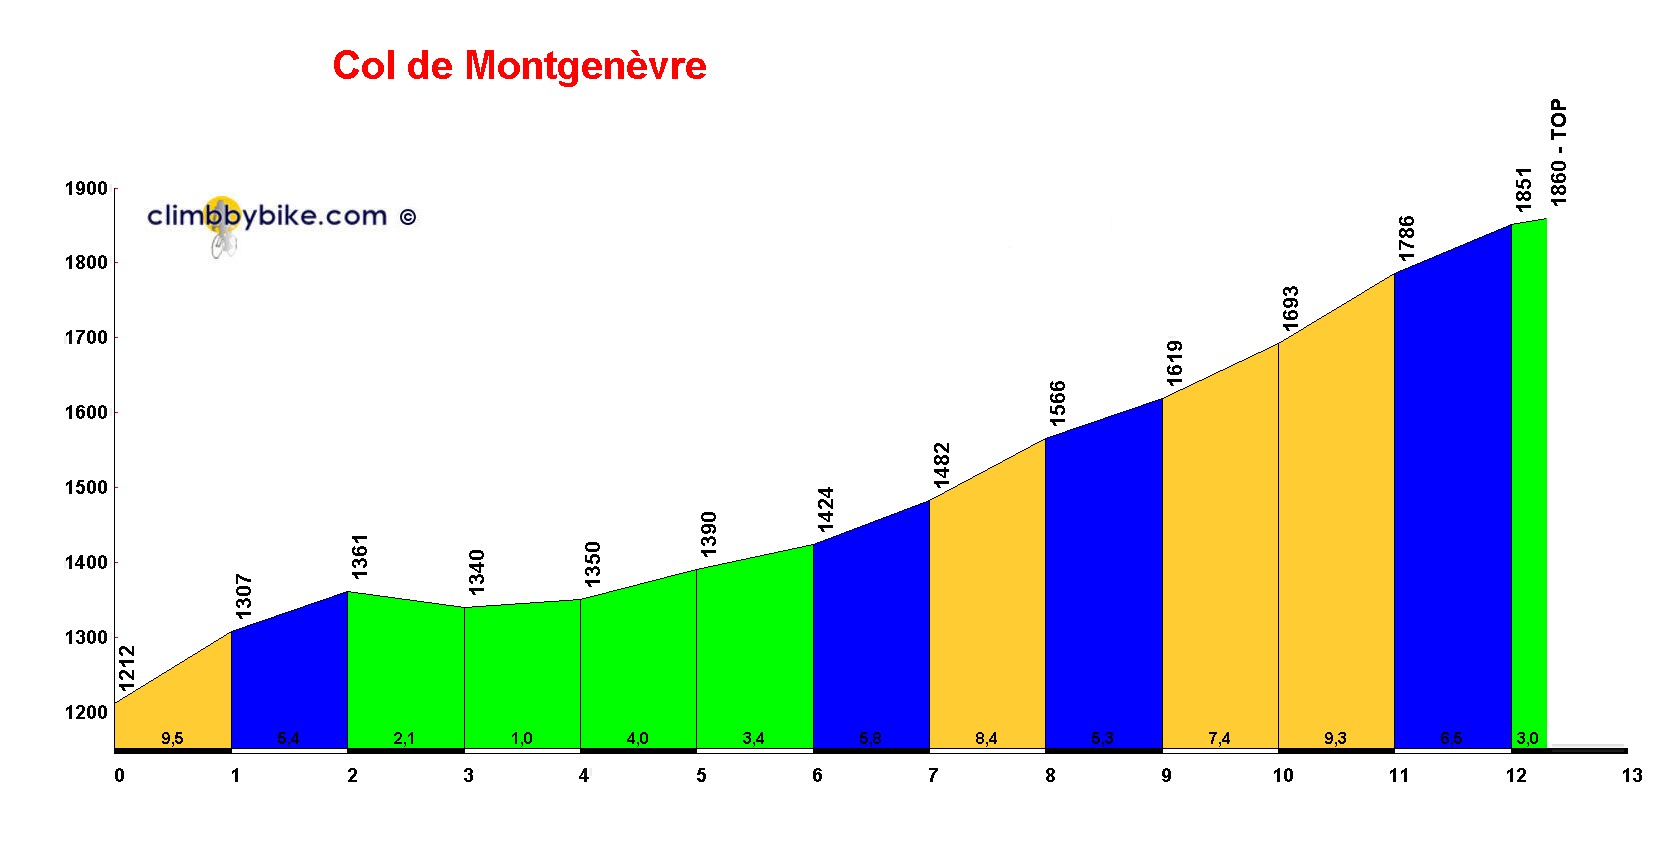 Elevation profile for Col de Montgenèvre